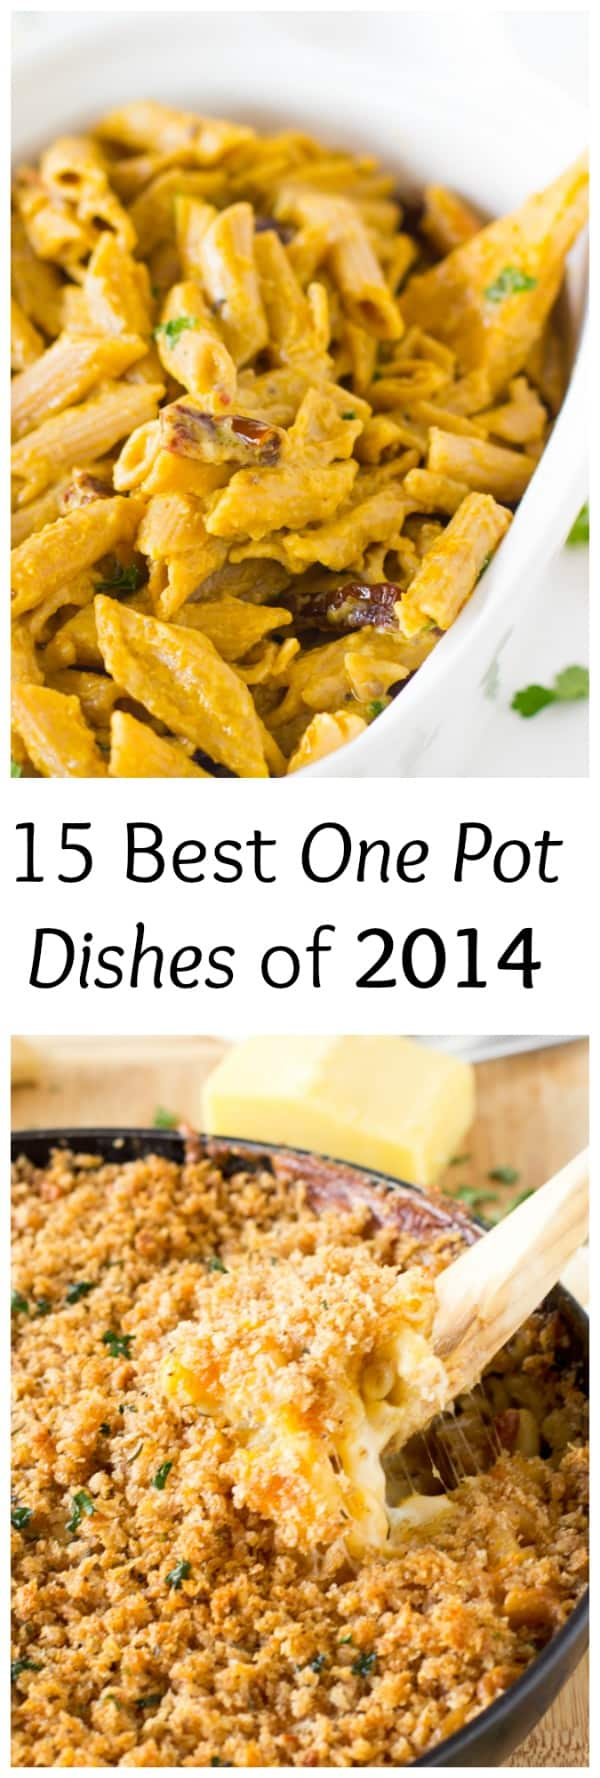 15 Best One Pot Dishes of 2014